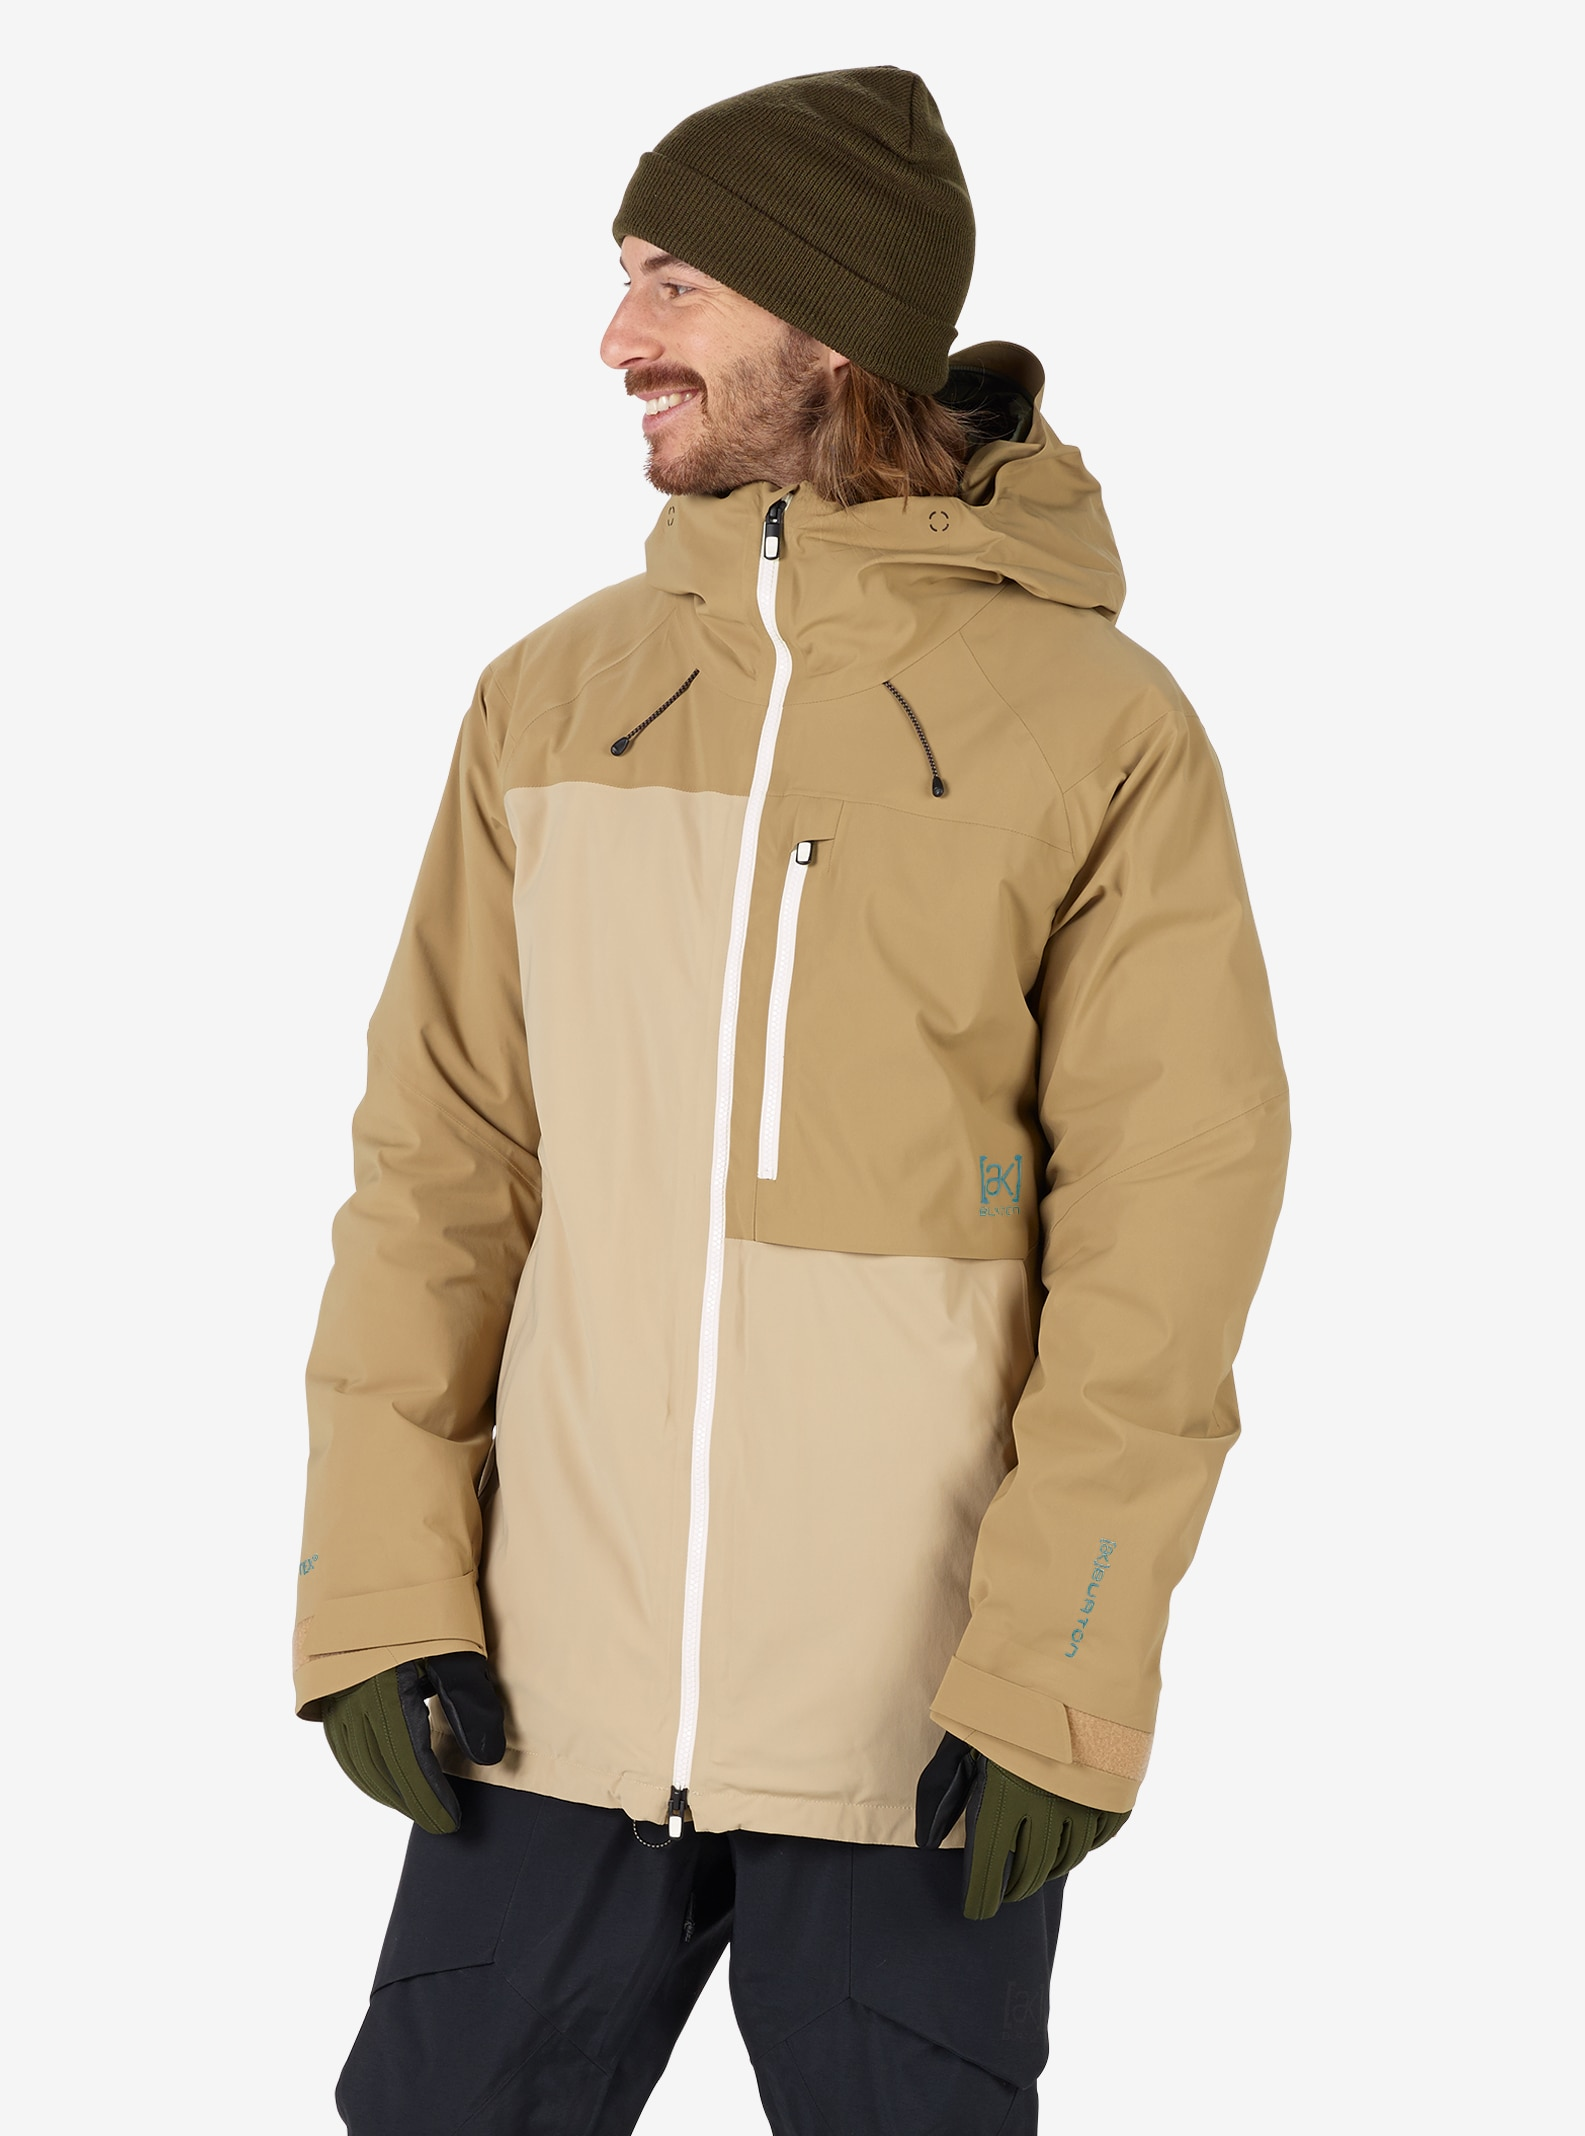 Men's Burton [ak] GORE‑TEX® Helitack Jacket shown in Kelp / Safari